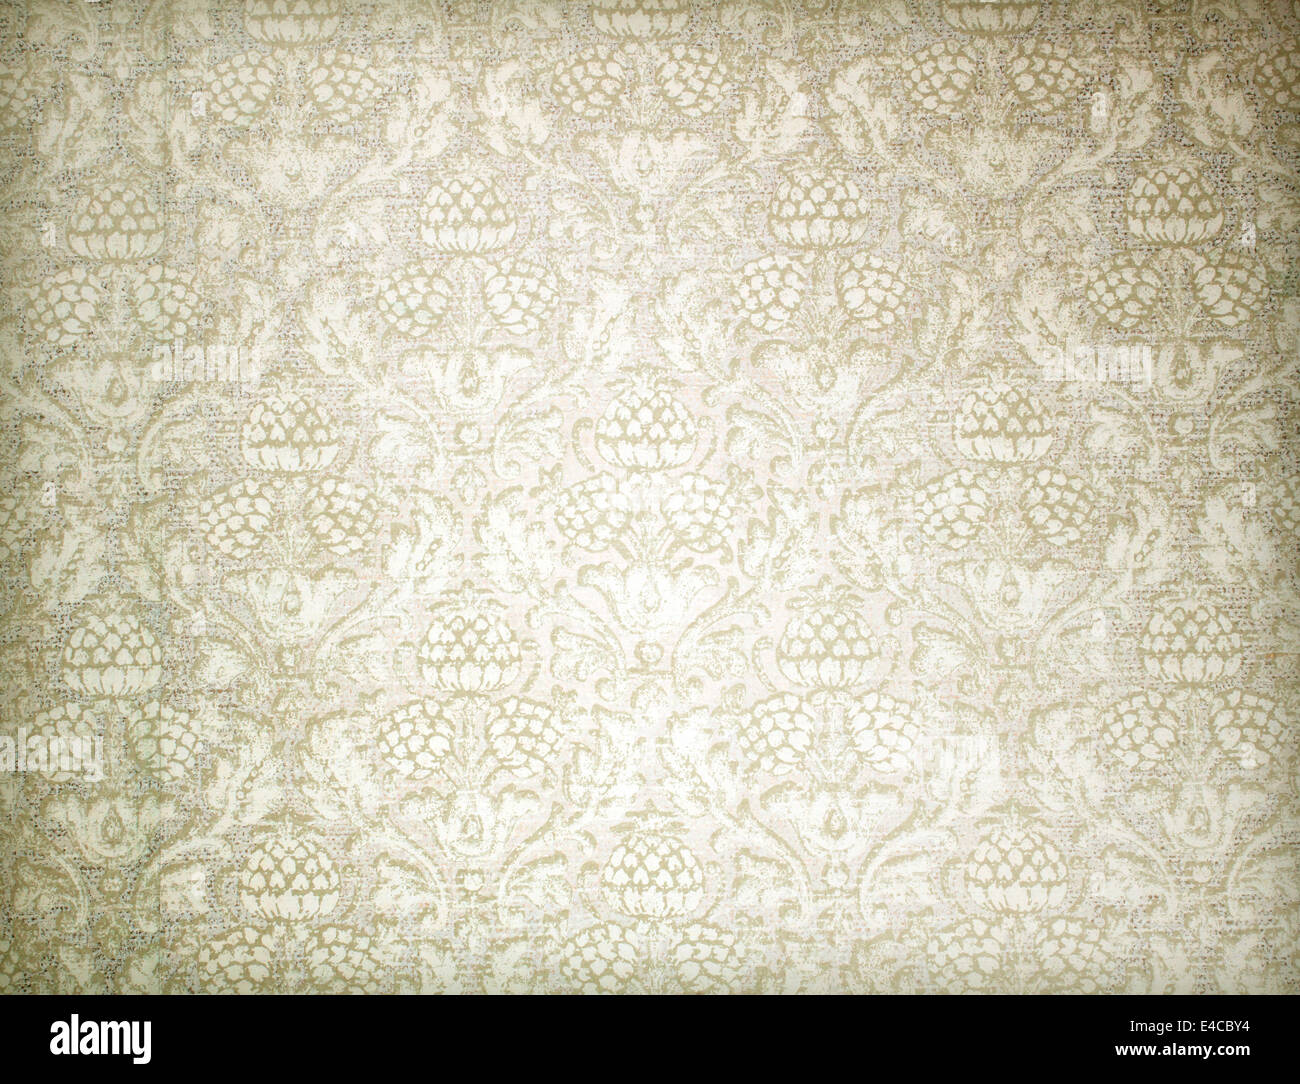 vintage shabby background with classy patterns abstract. - Stock Image